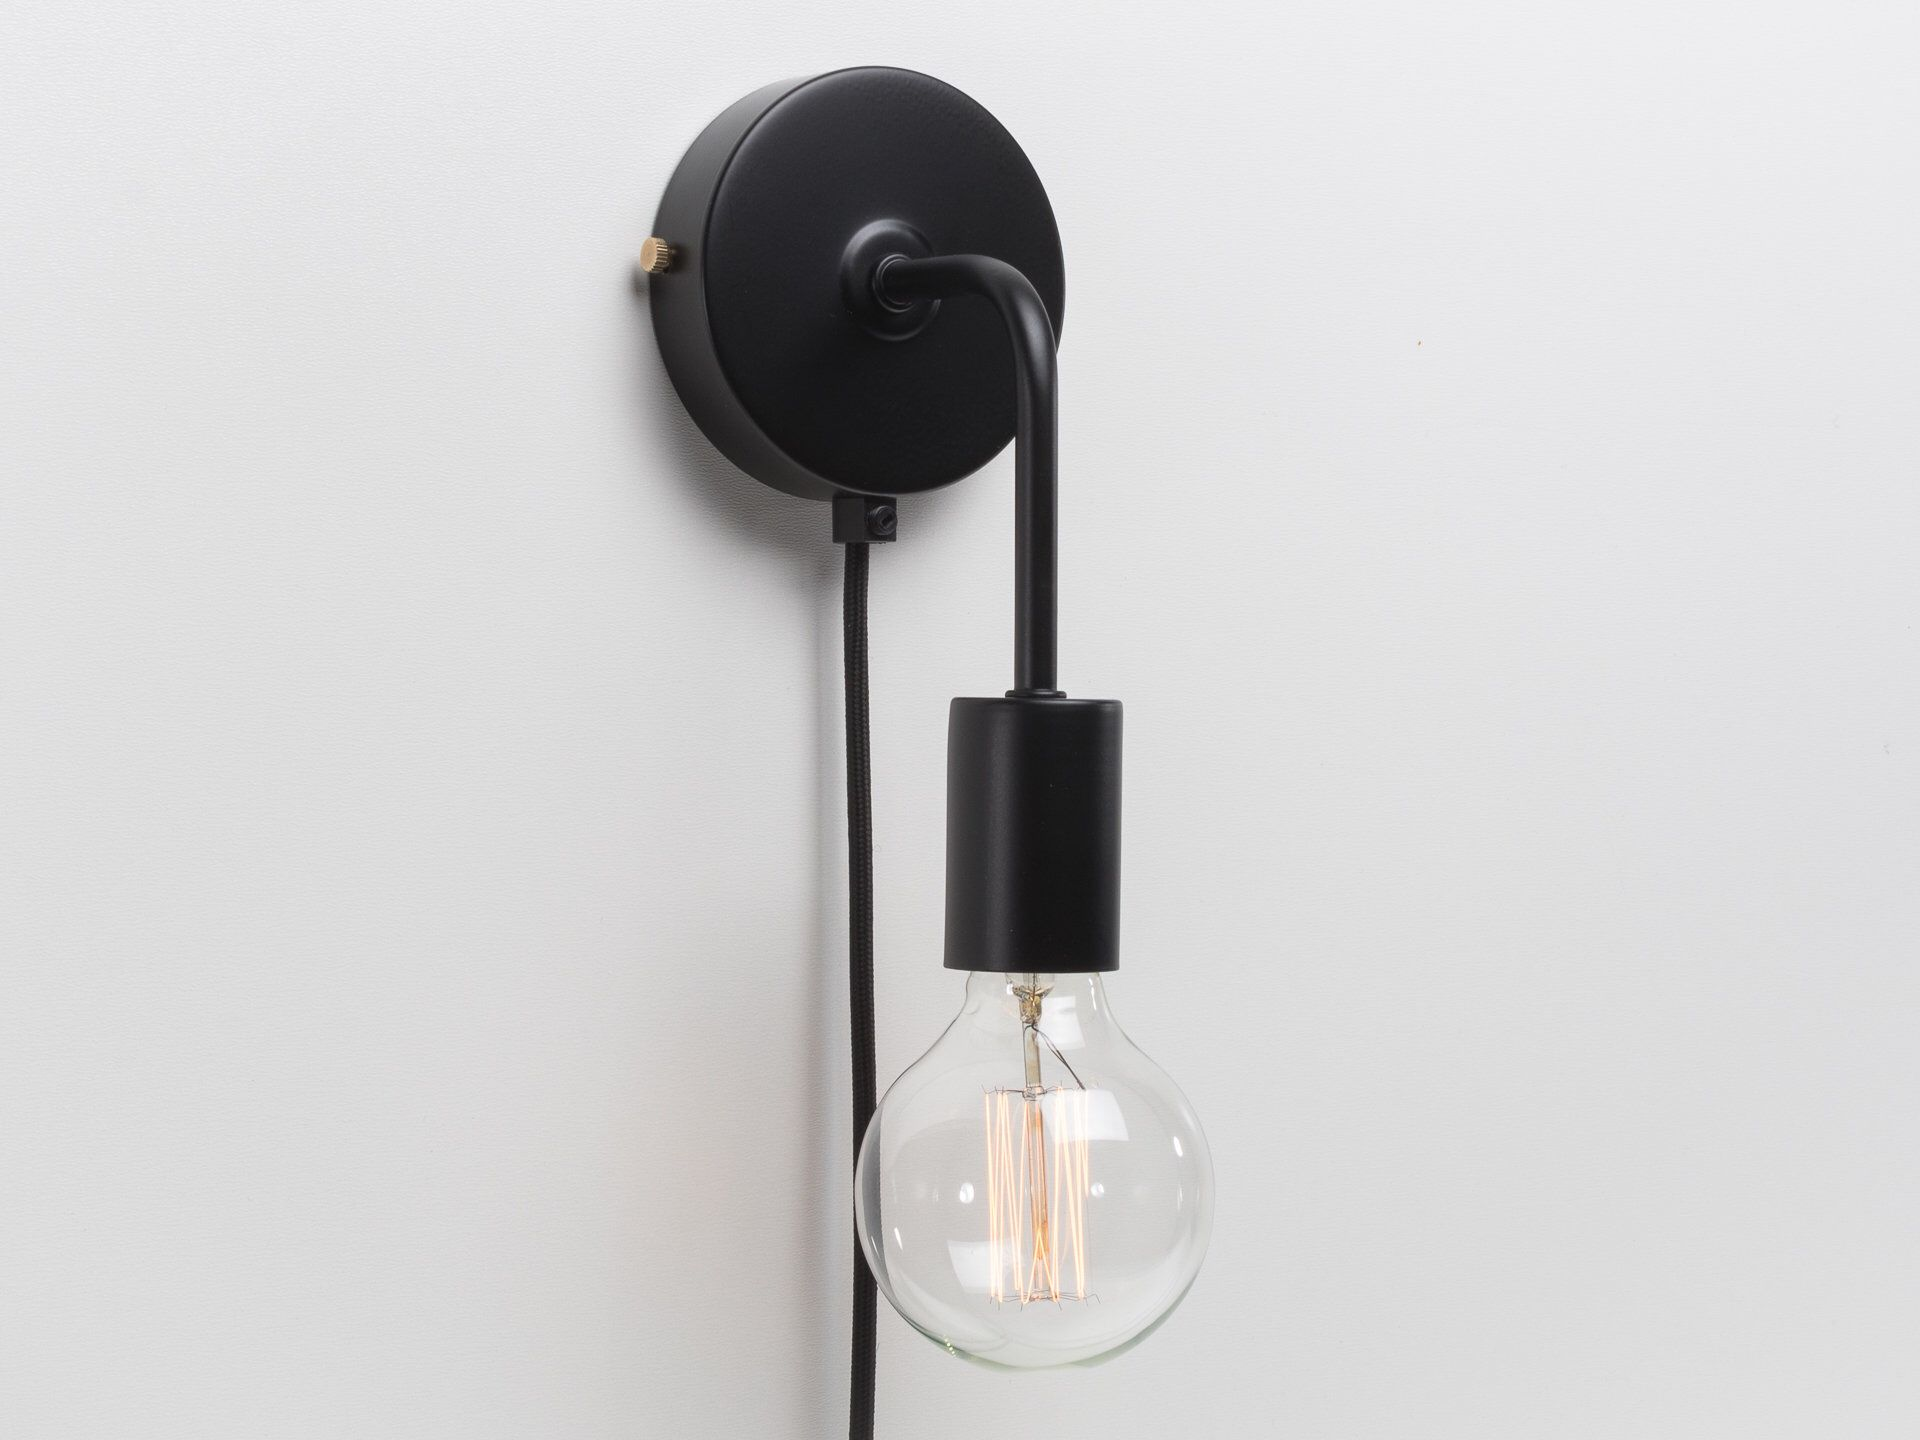 Minimalist Wall Sconce Plug In On Off Switch Black Retro Loft Industrial Lamp By Retrolightstore On Etsy Http Retro Lighting Wall Sconces Sconces